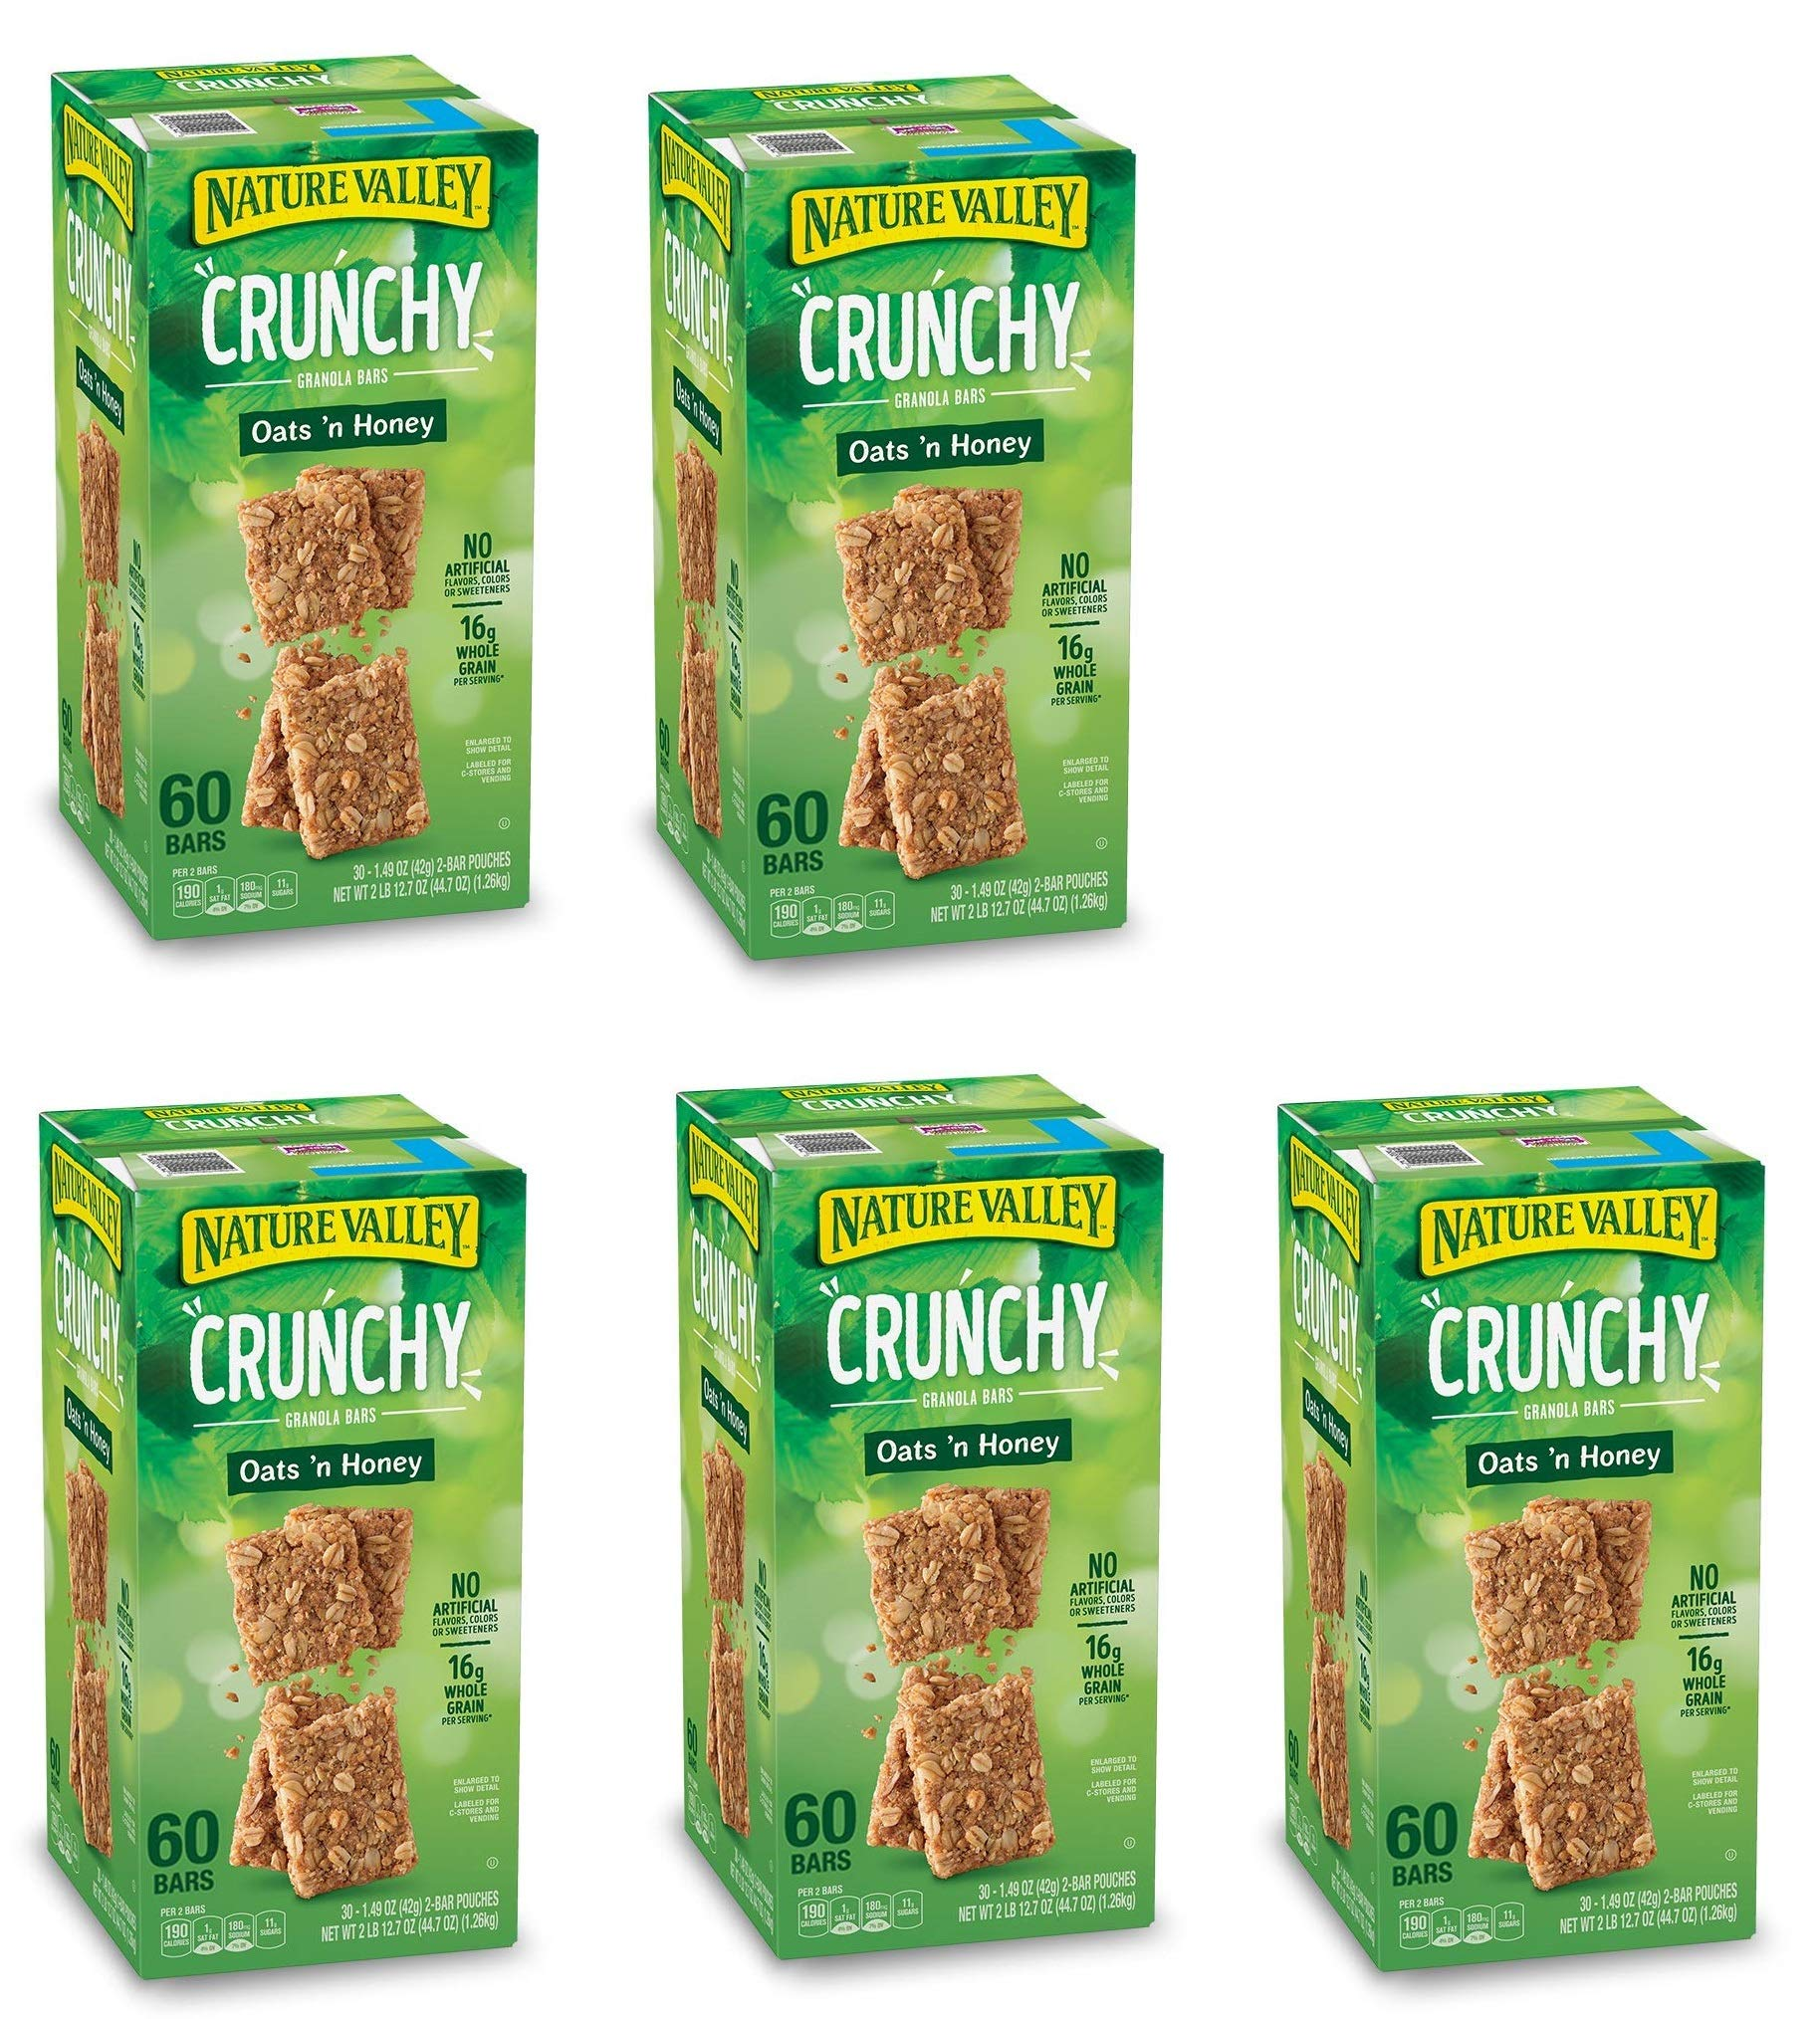 Natures Valley granola bars, Crunchy Oats N Honey, 60 Bars (5 Boxes)